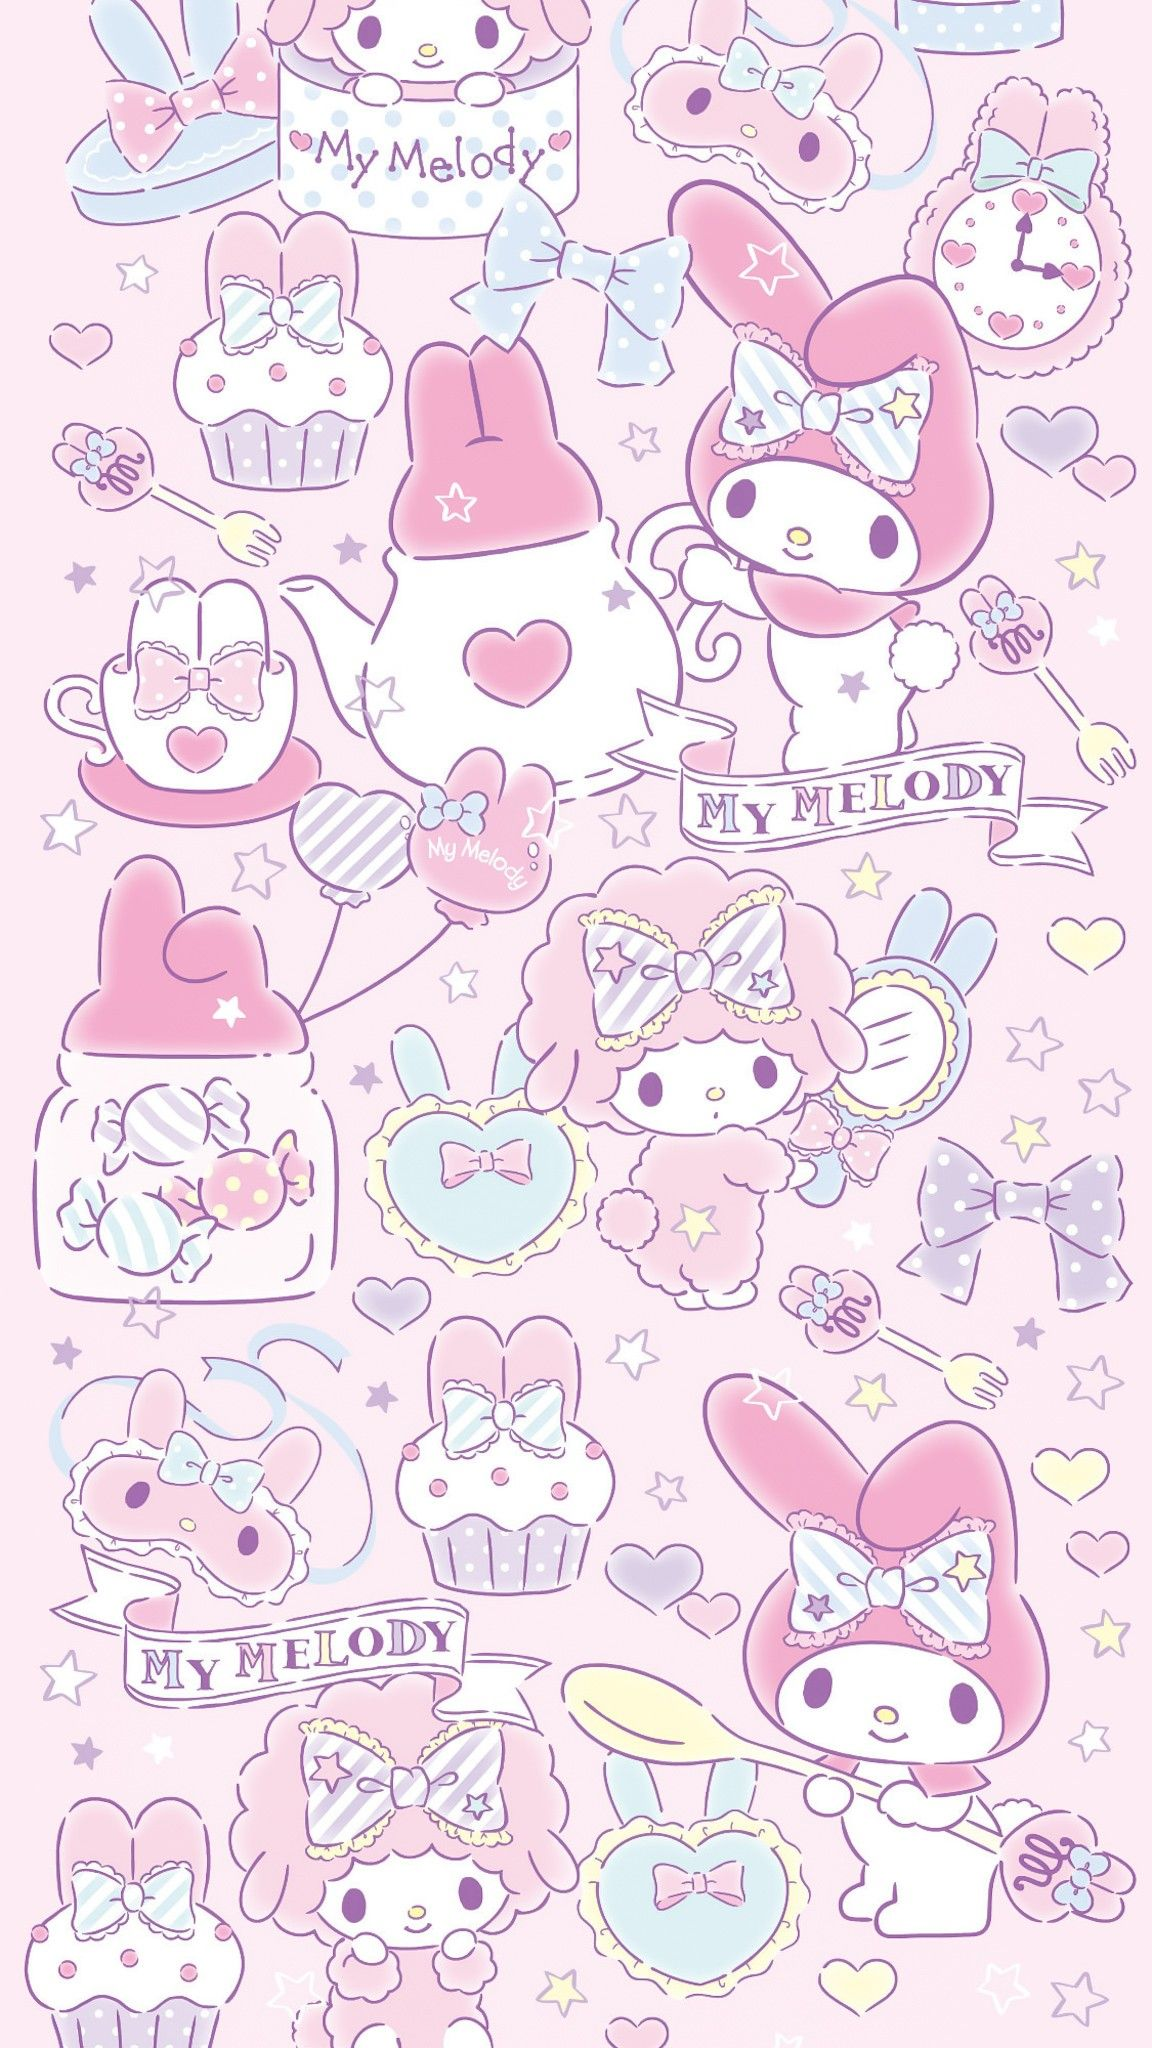 Pin On My Melody Wpp